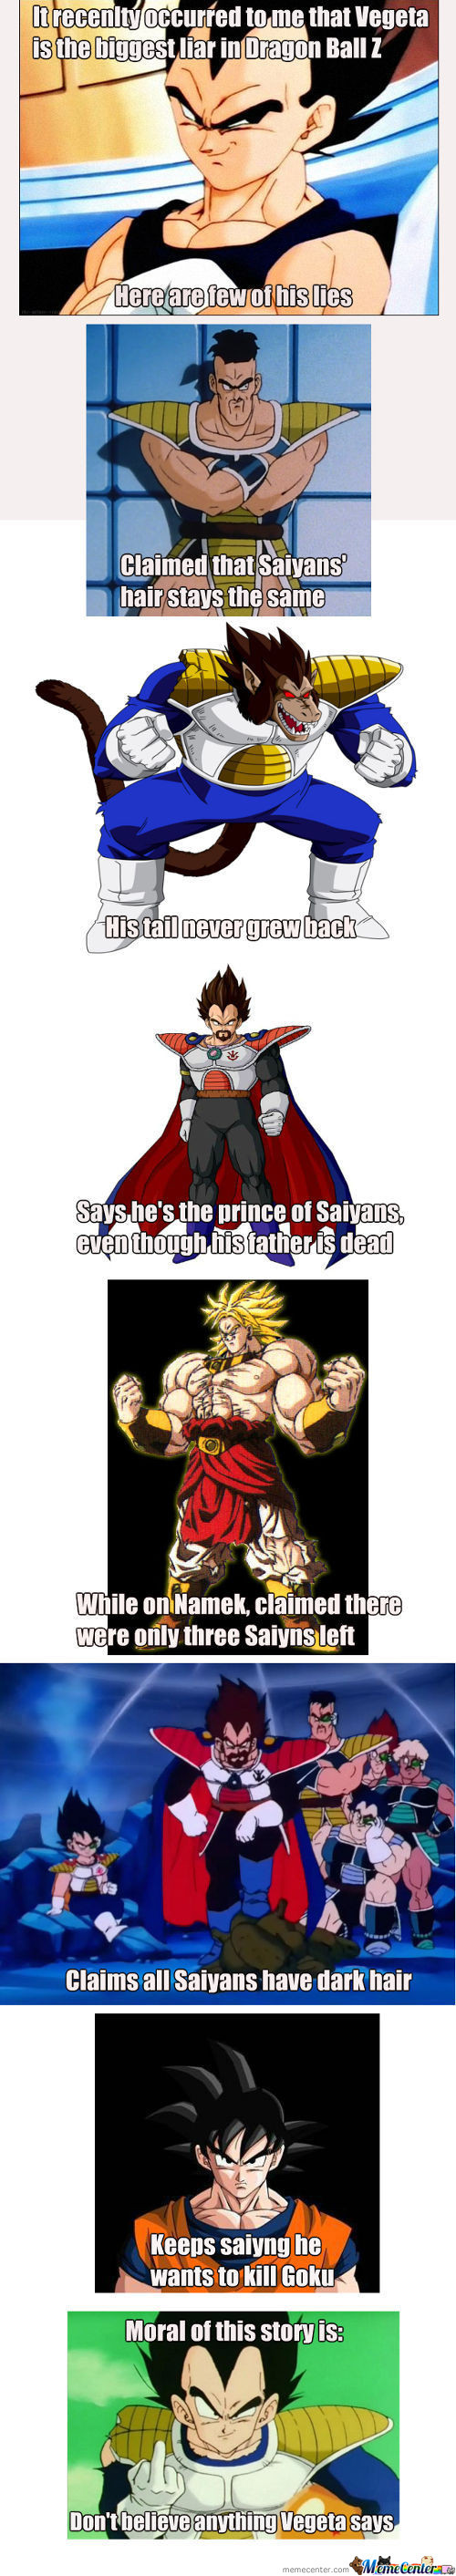 Vegeta Is A Liar